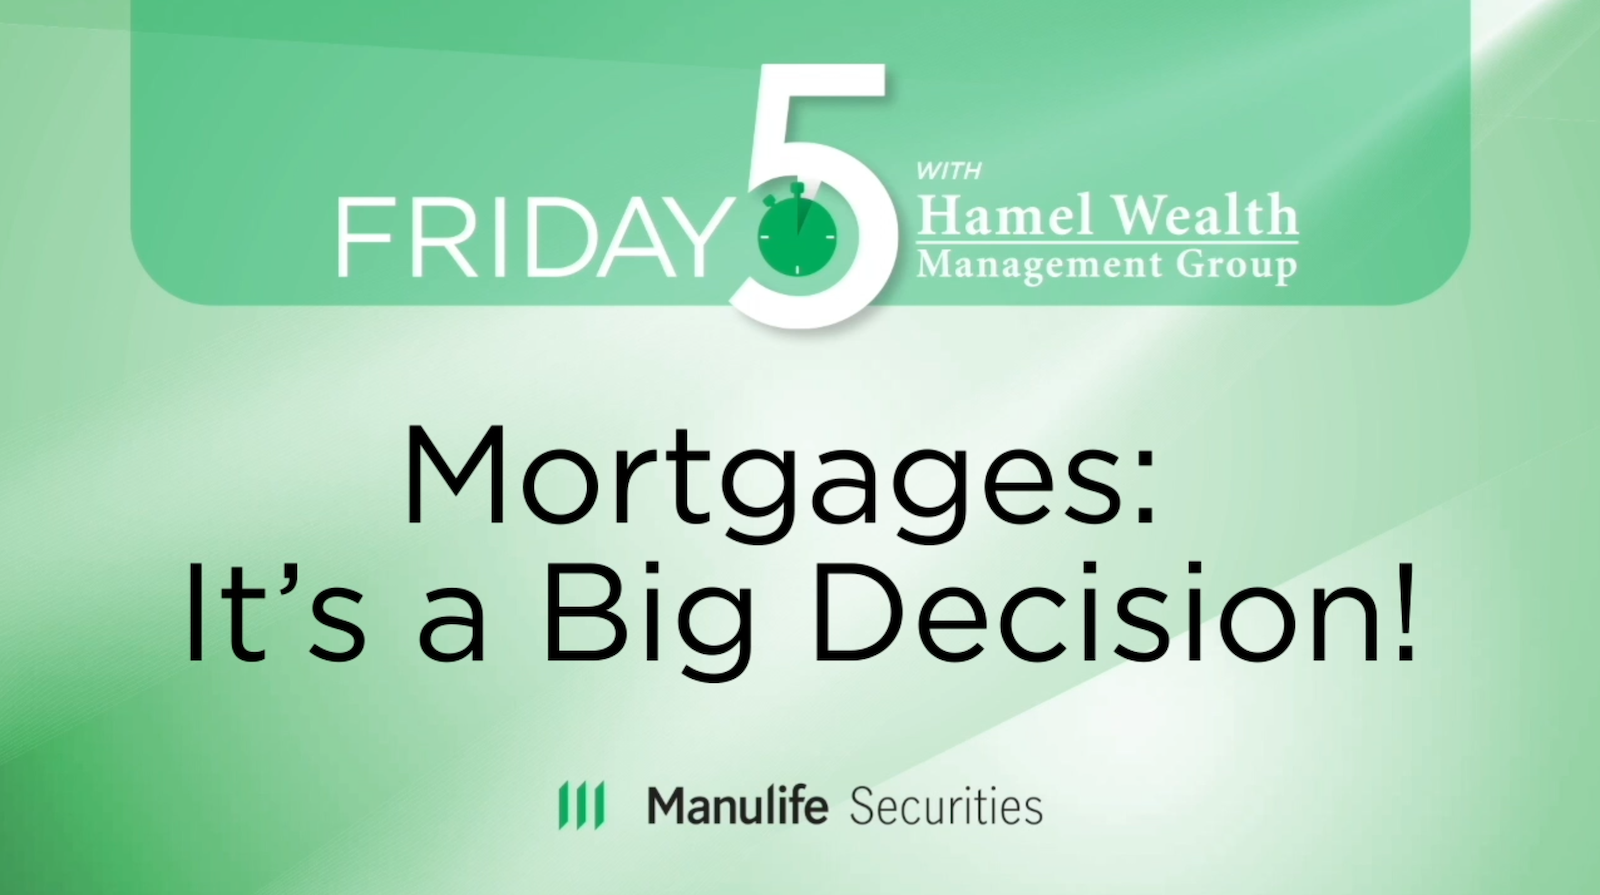 Friday 5 - Mortgages:  It's a Big Decision! Thumbnail